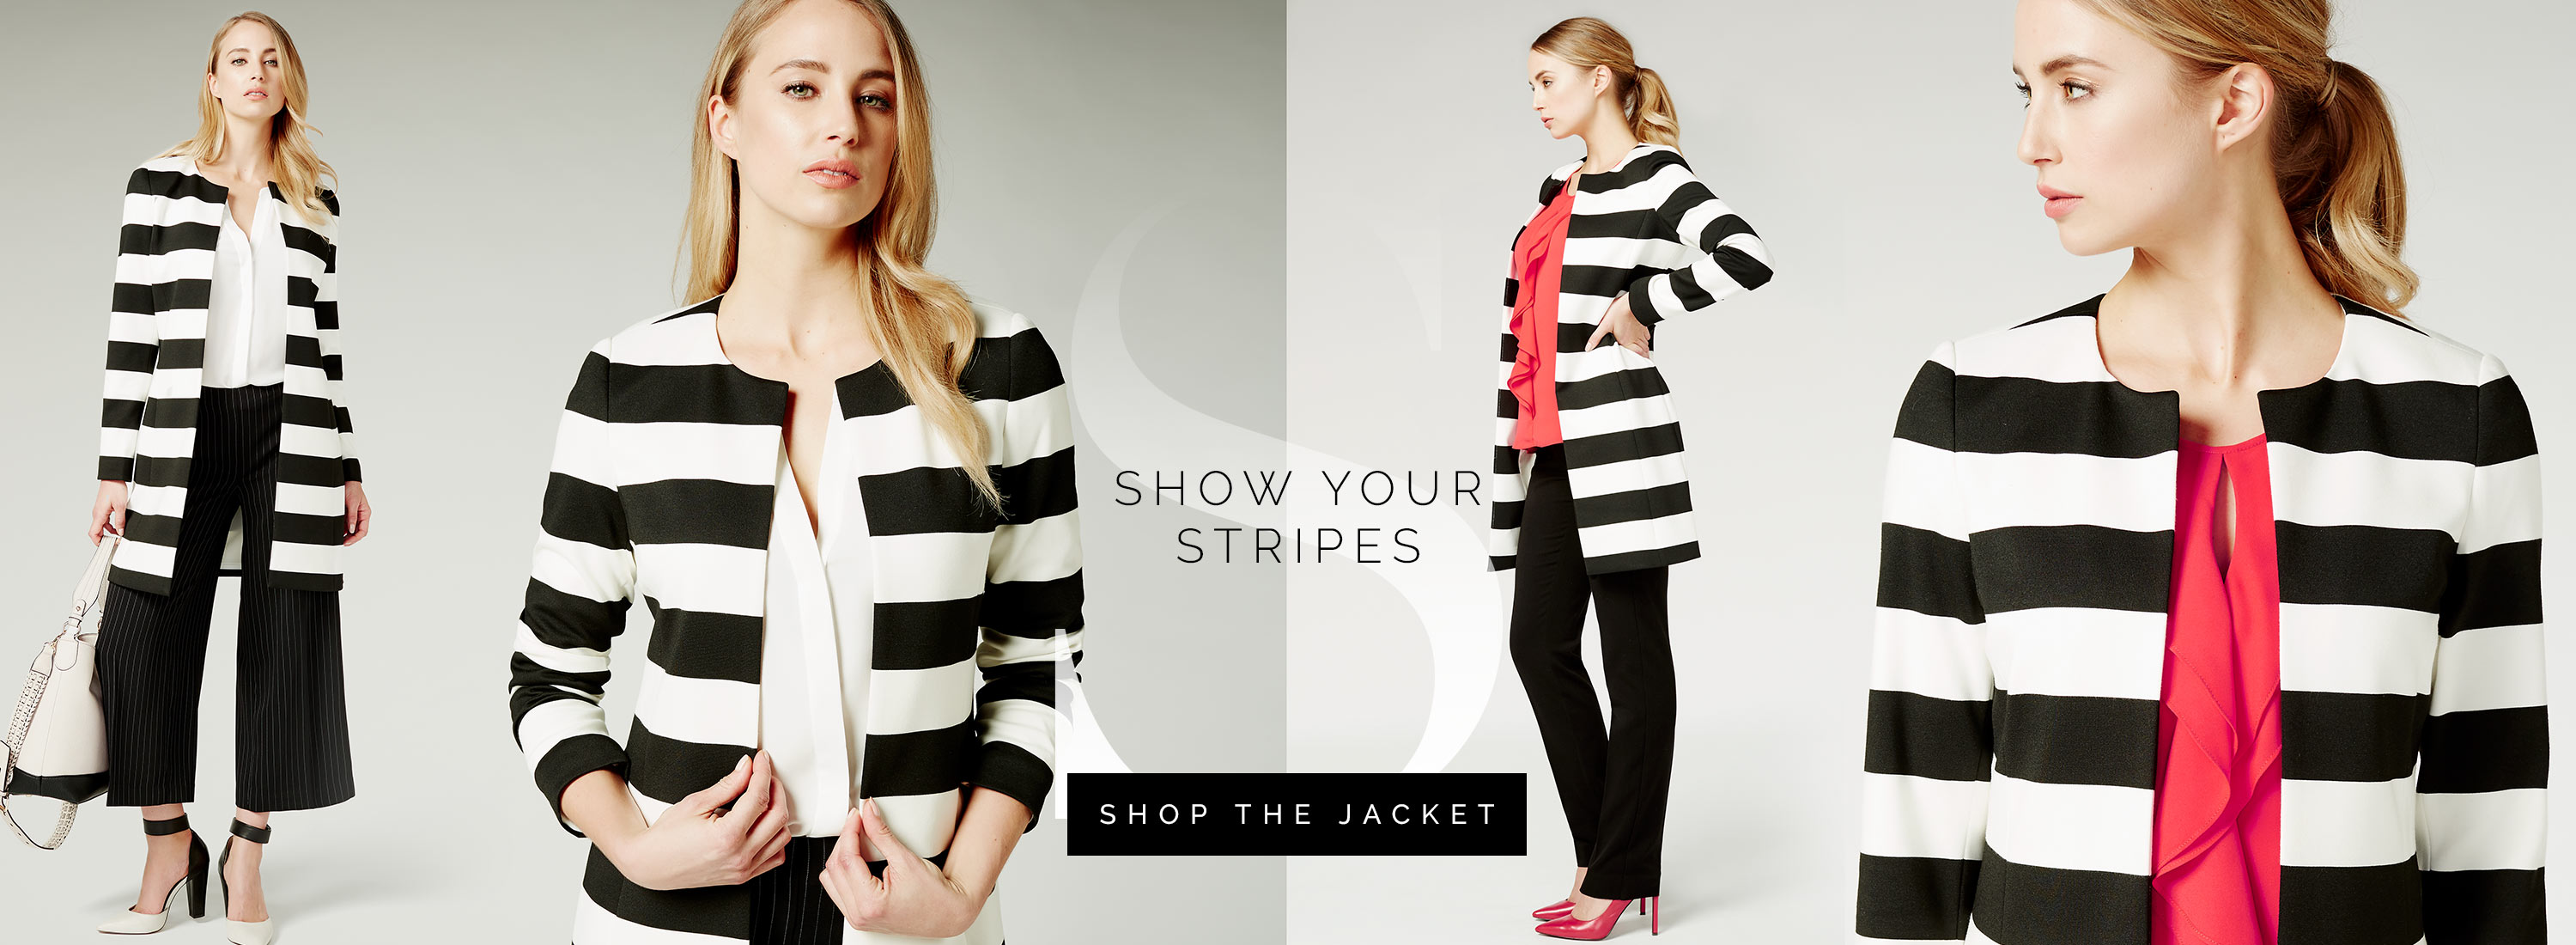 Show your stripes - SHOP THE JACKET